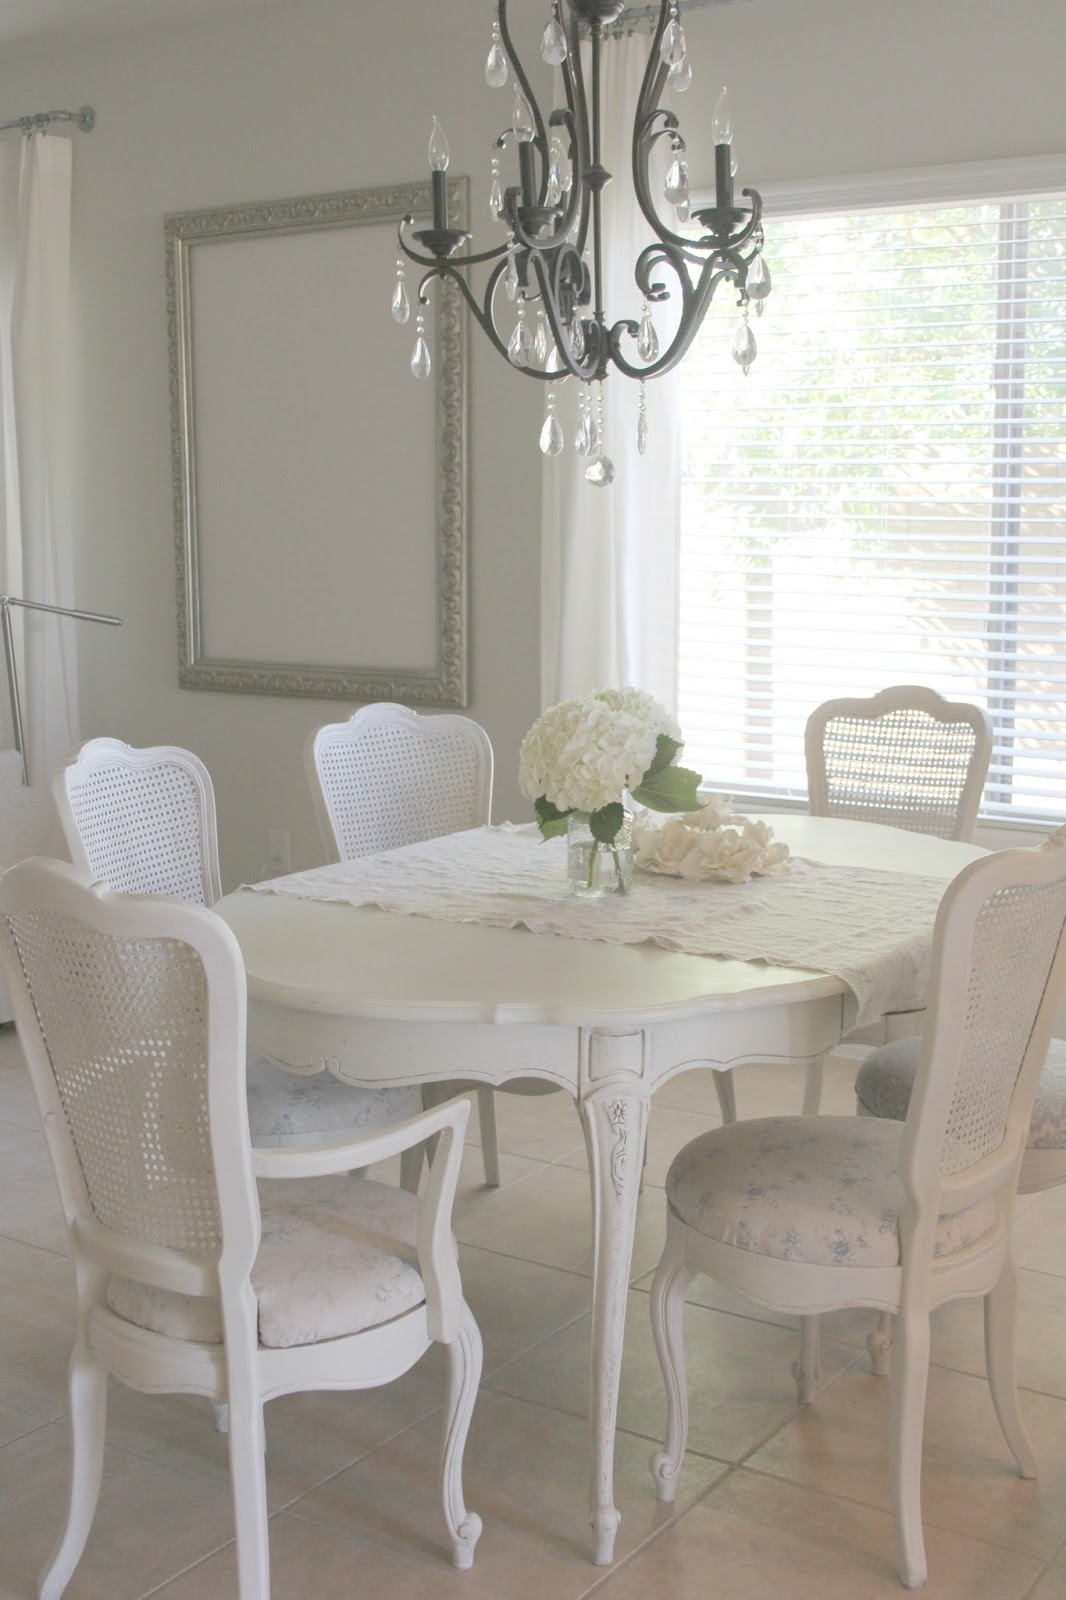 Before And After Diy Living Room And Dining Room Decor